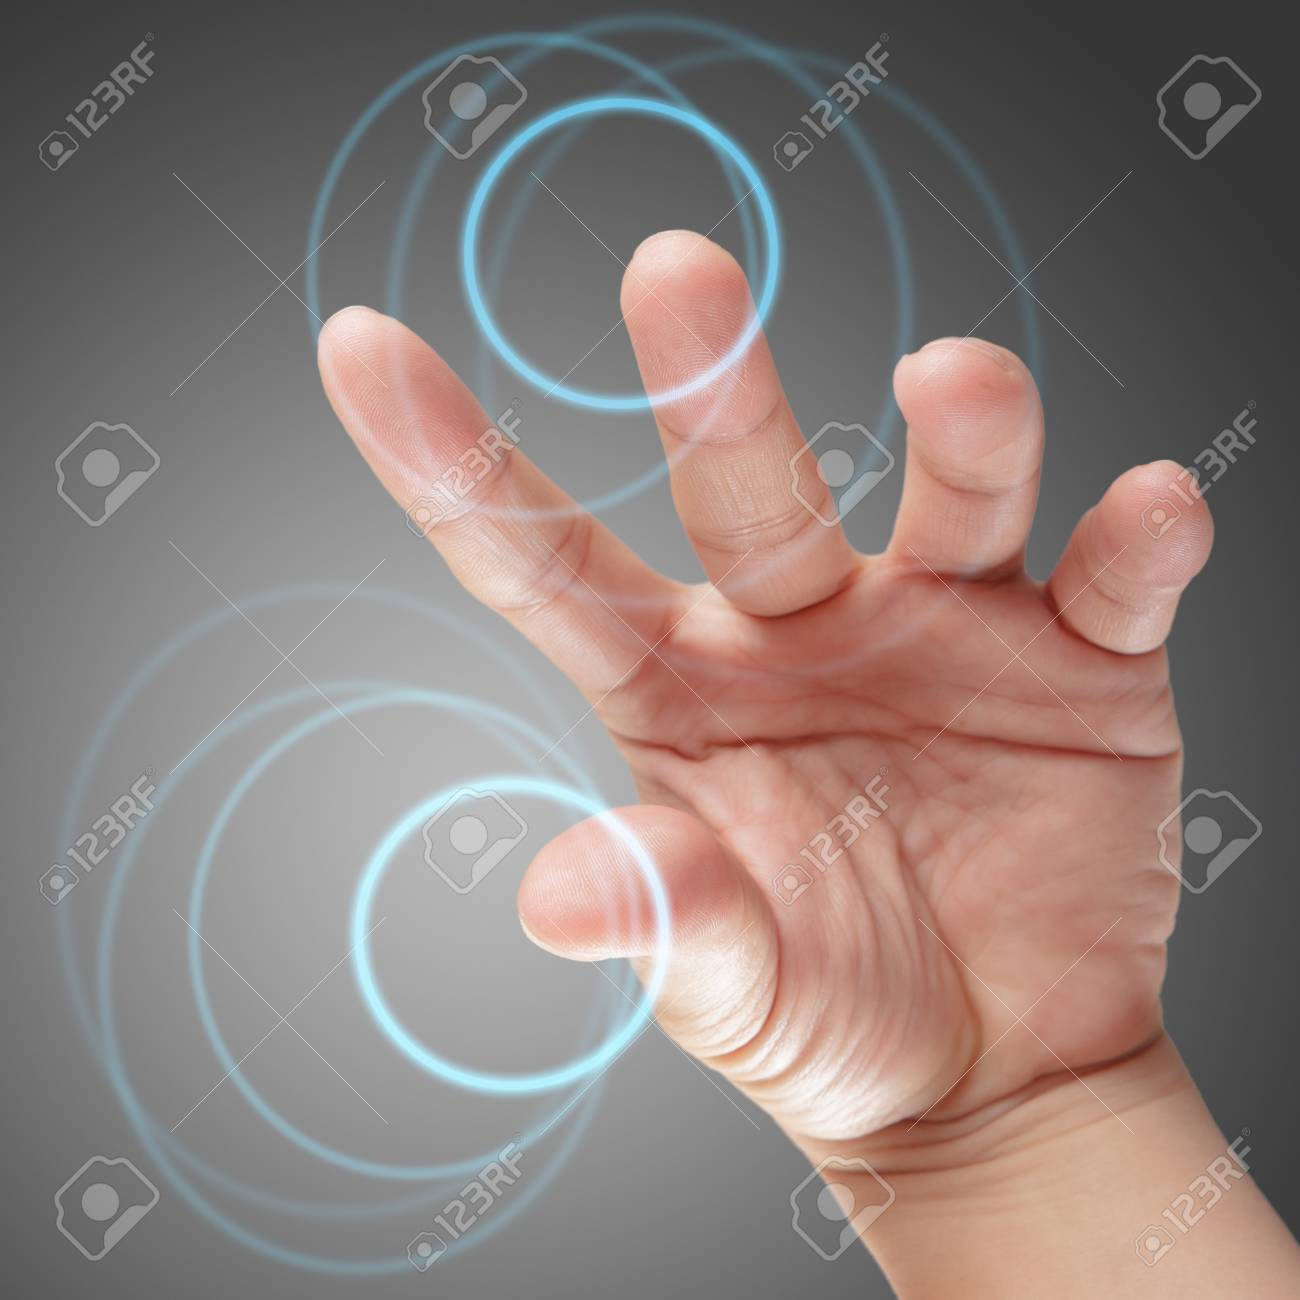 male hand working on touch screen interface as concept Stock Photo - 14731719